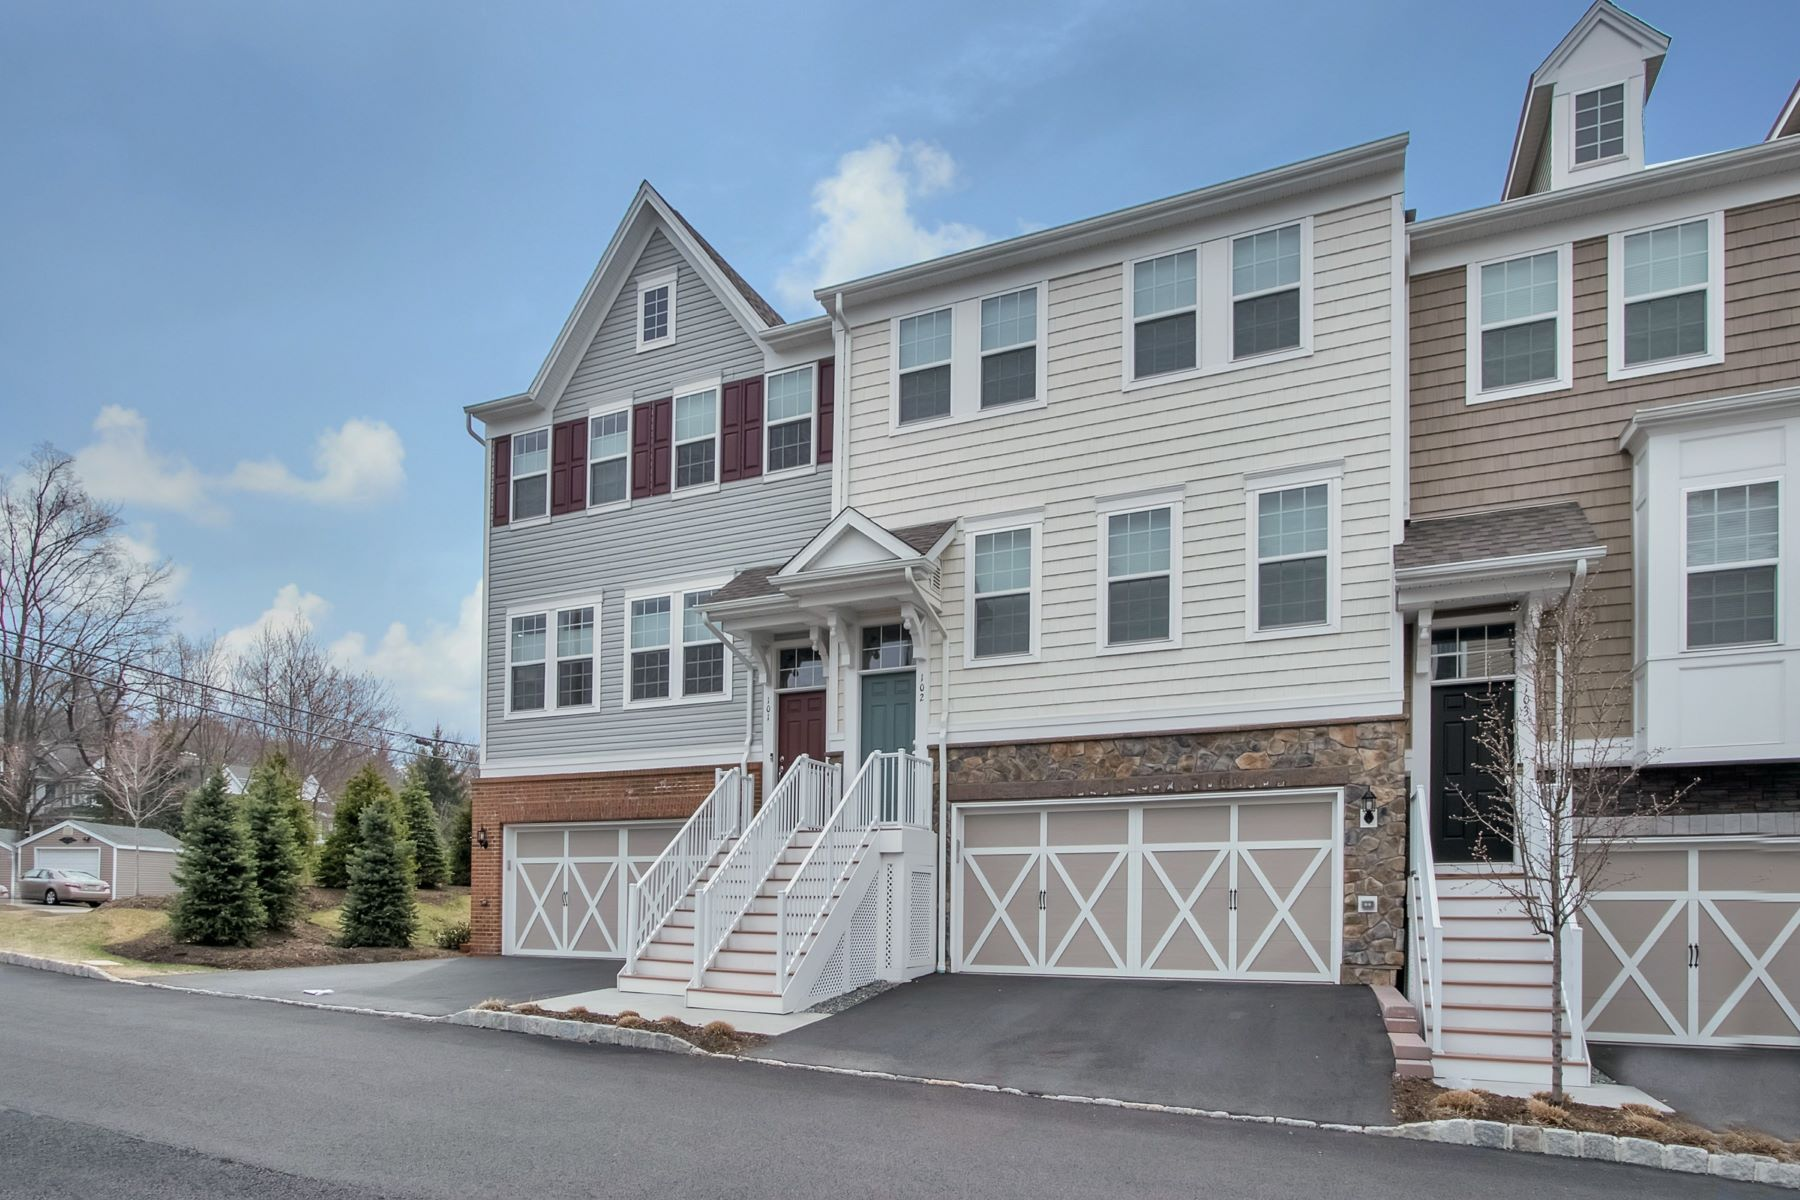 Townhouse for Sale at Luxury Townhouse 102 Orchard Ter, Cresskill, New Jersey, 07626 United States